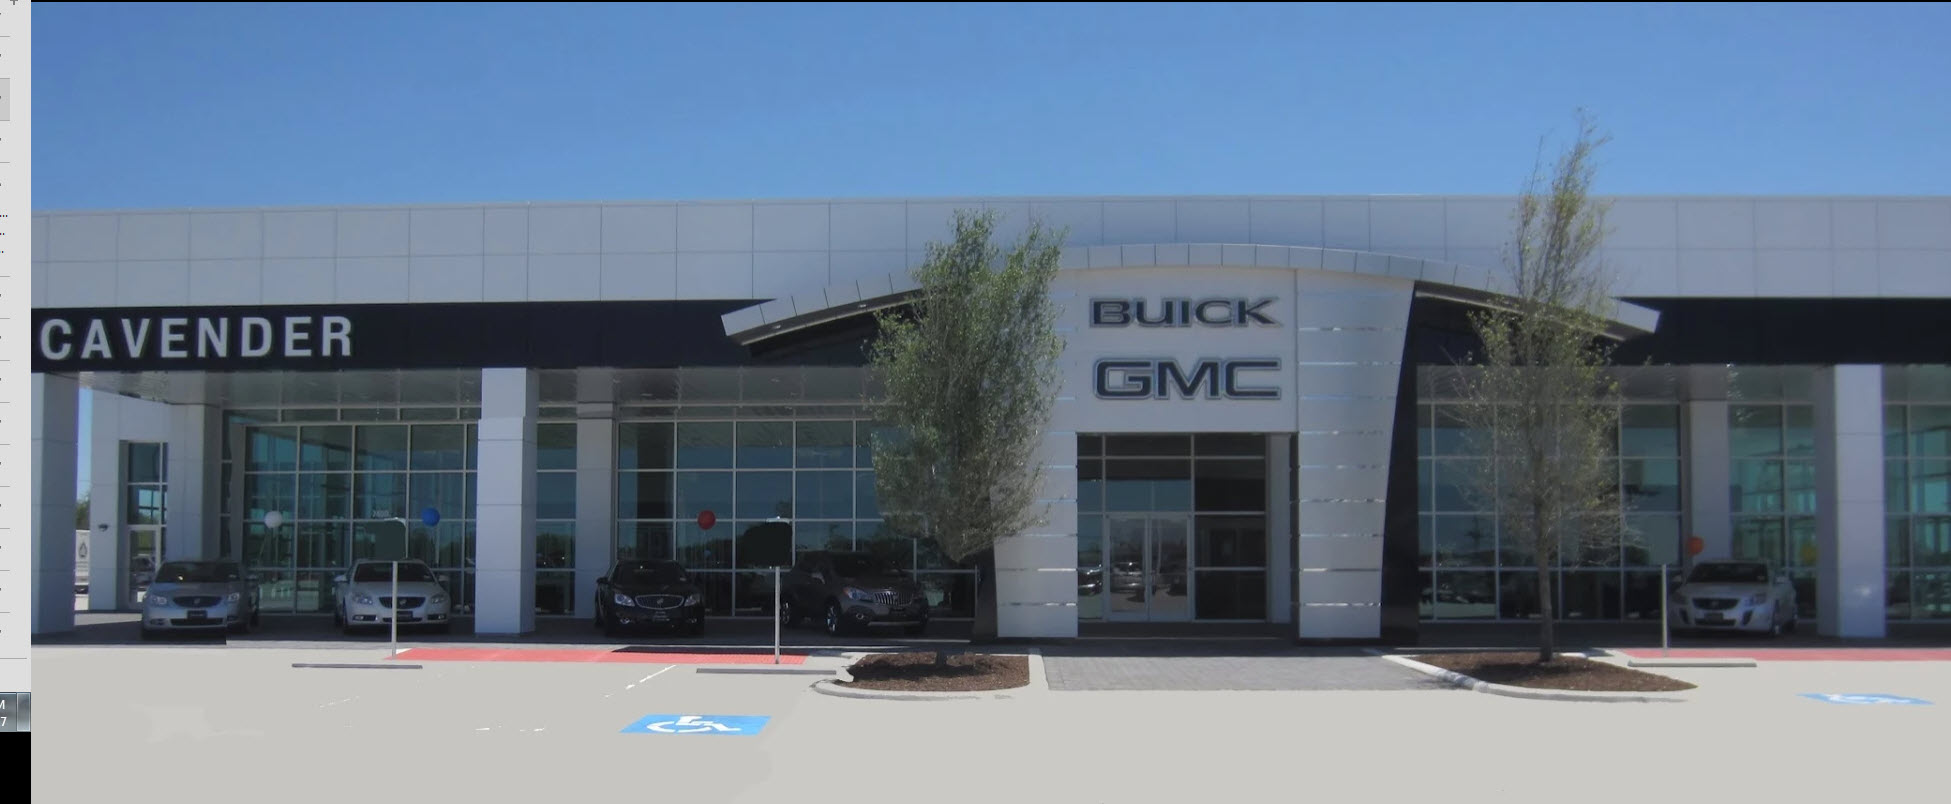 Cavender Buick Gmc West In San Antonio Tx Whitepages